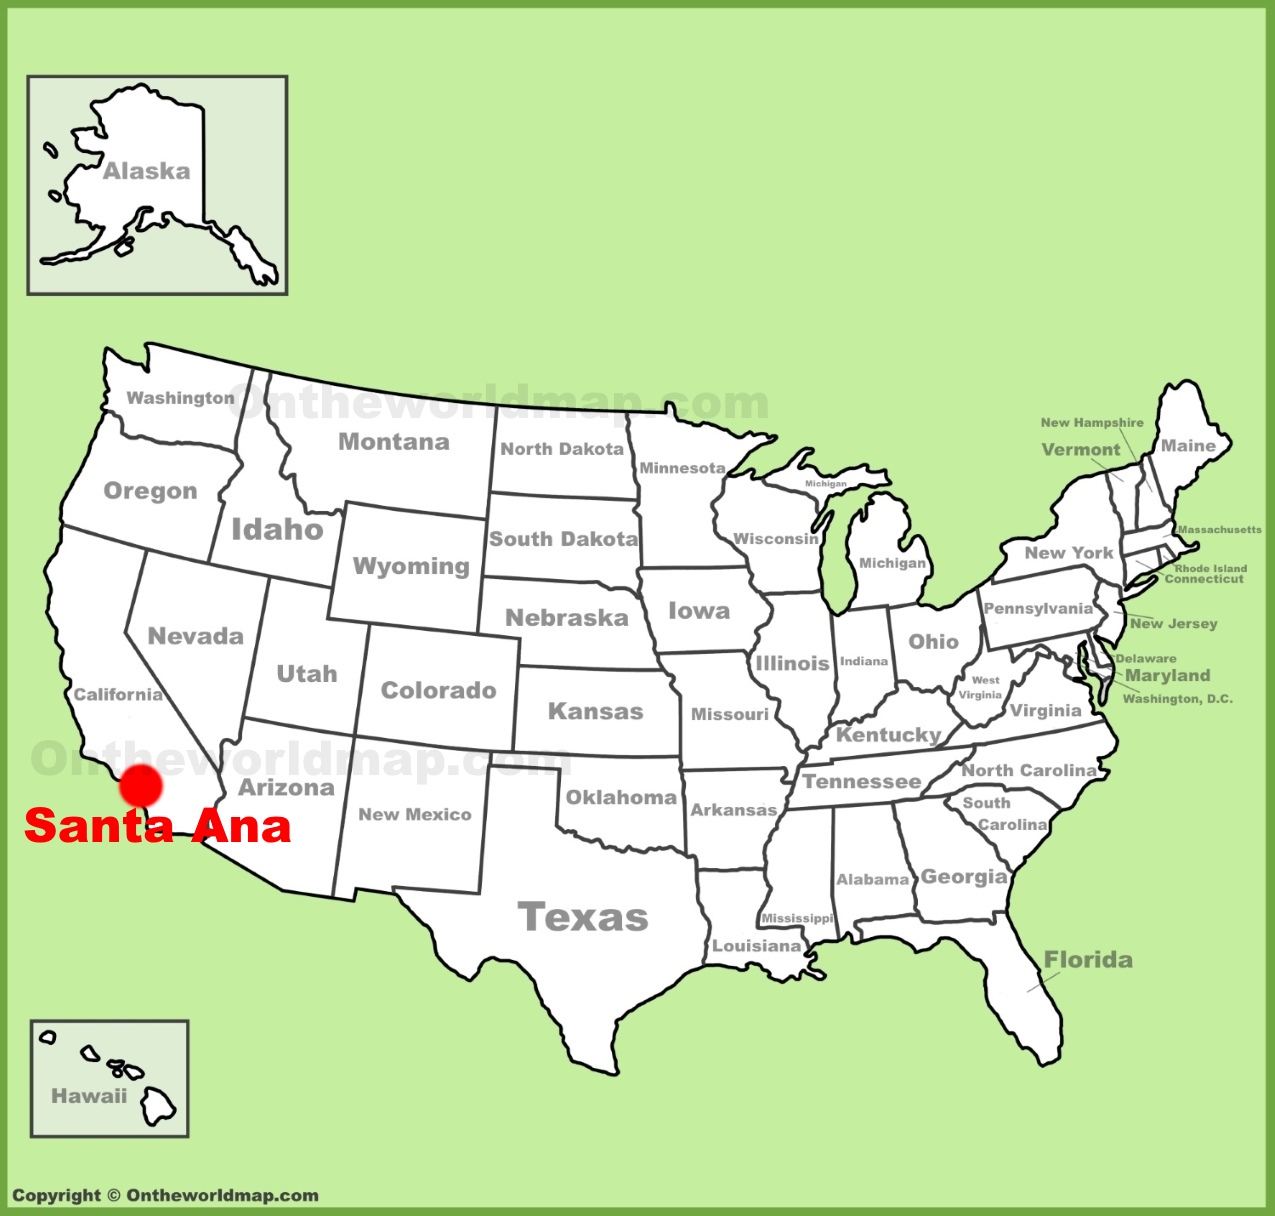 Santa Ana location on the US Map